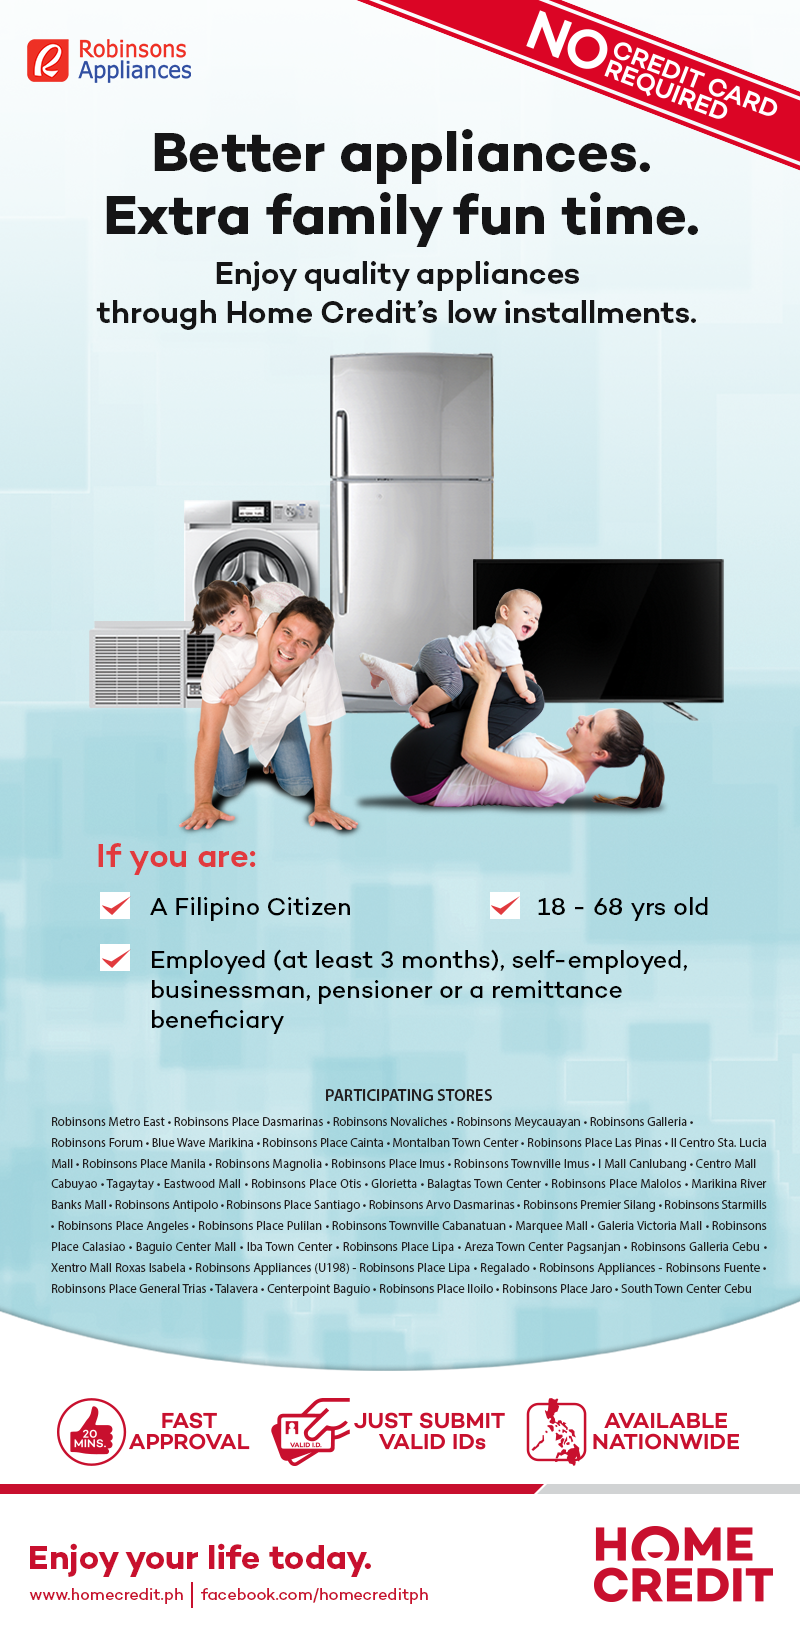 Robinsons Appliances Home Credit